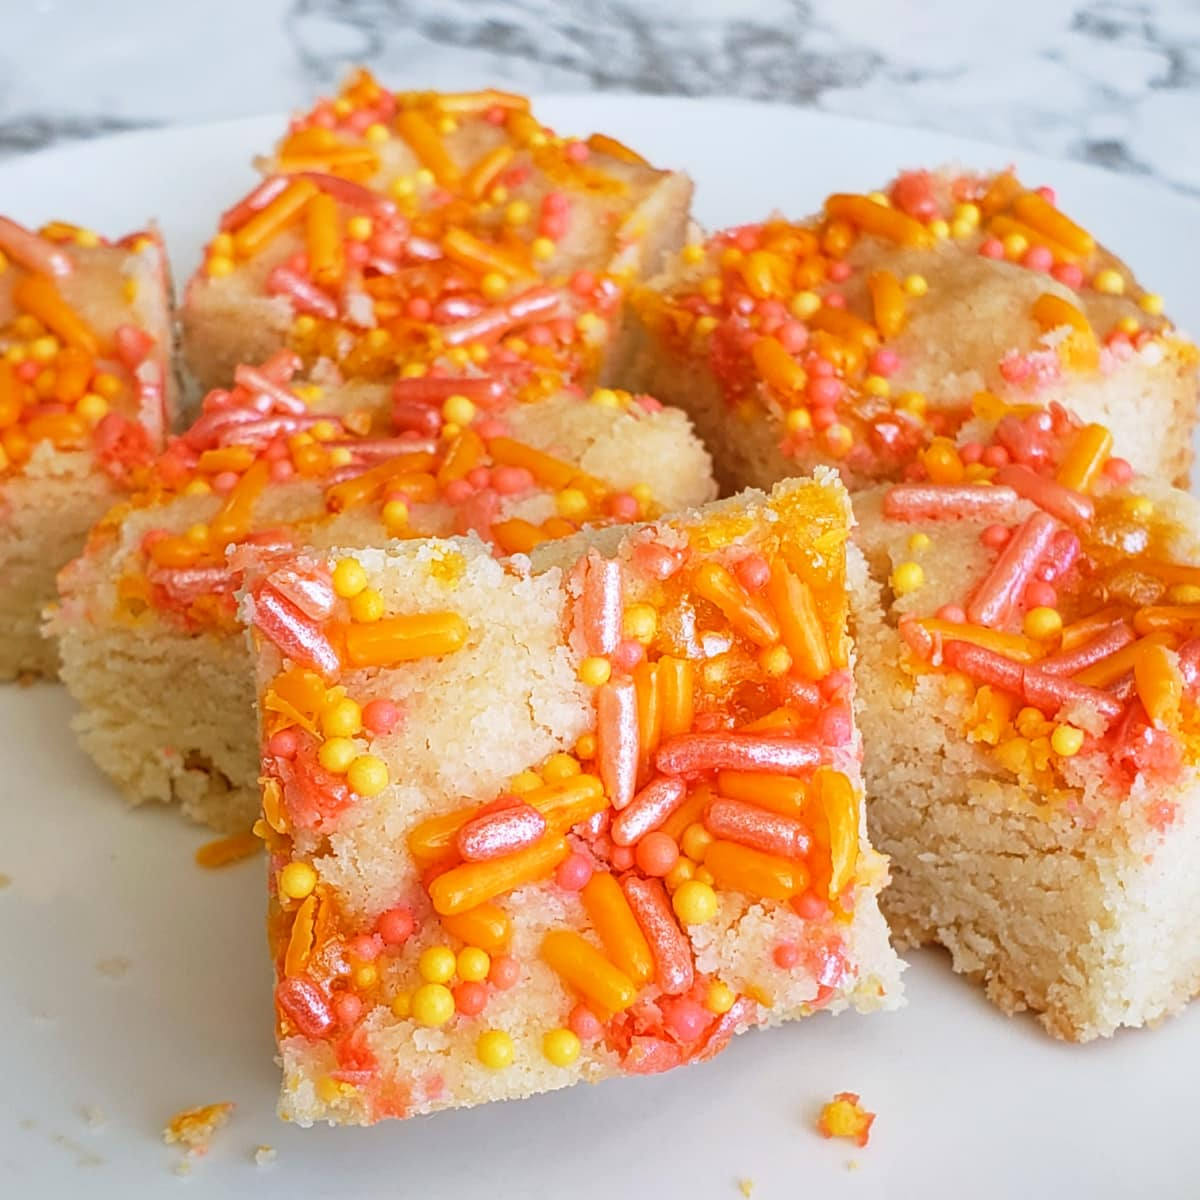 Lemon Shortbread with Sprinkles looks very springy